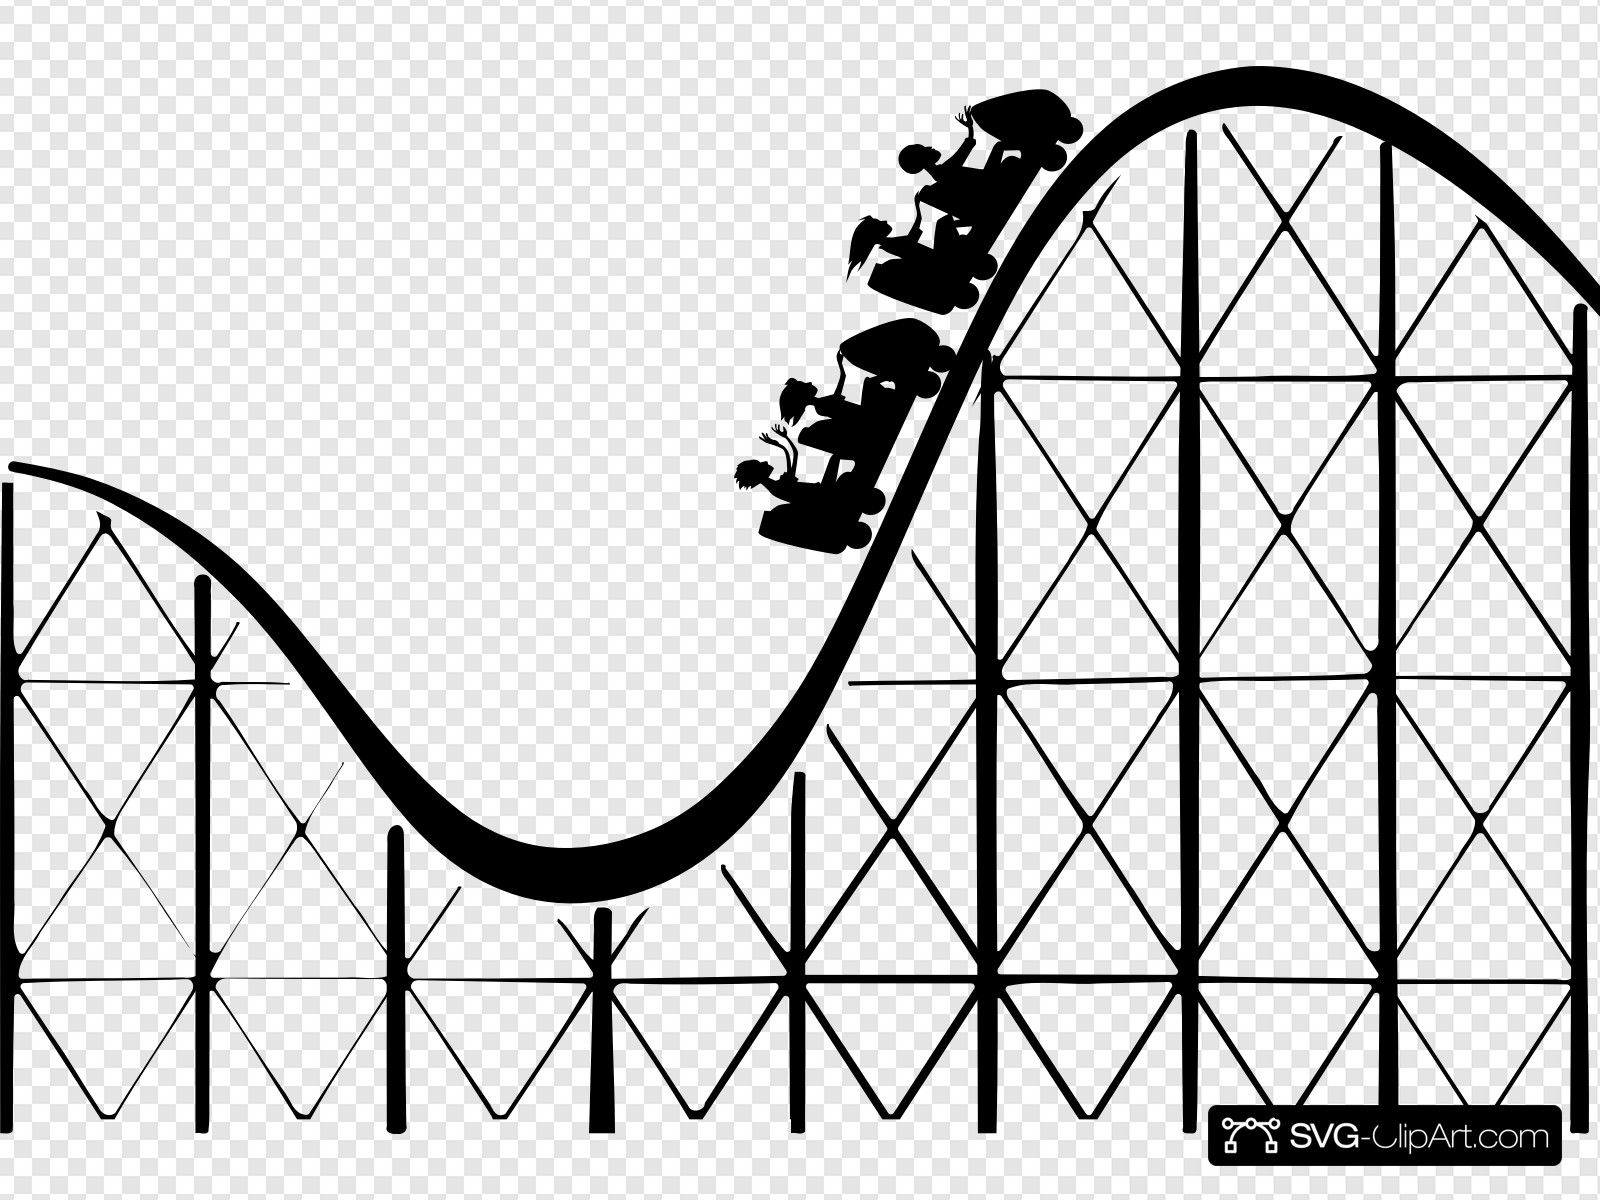 Roller Coaster Clip art, Icon and SVG.